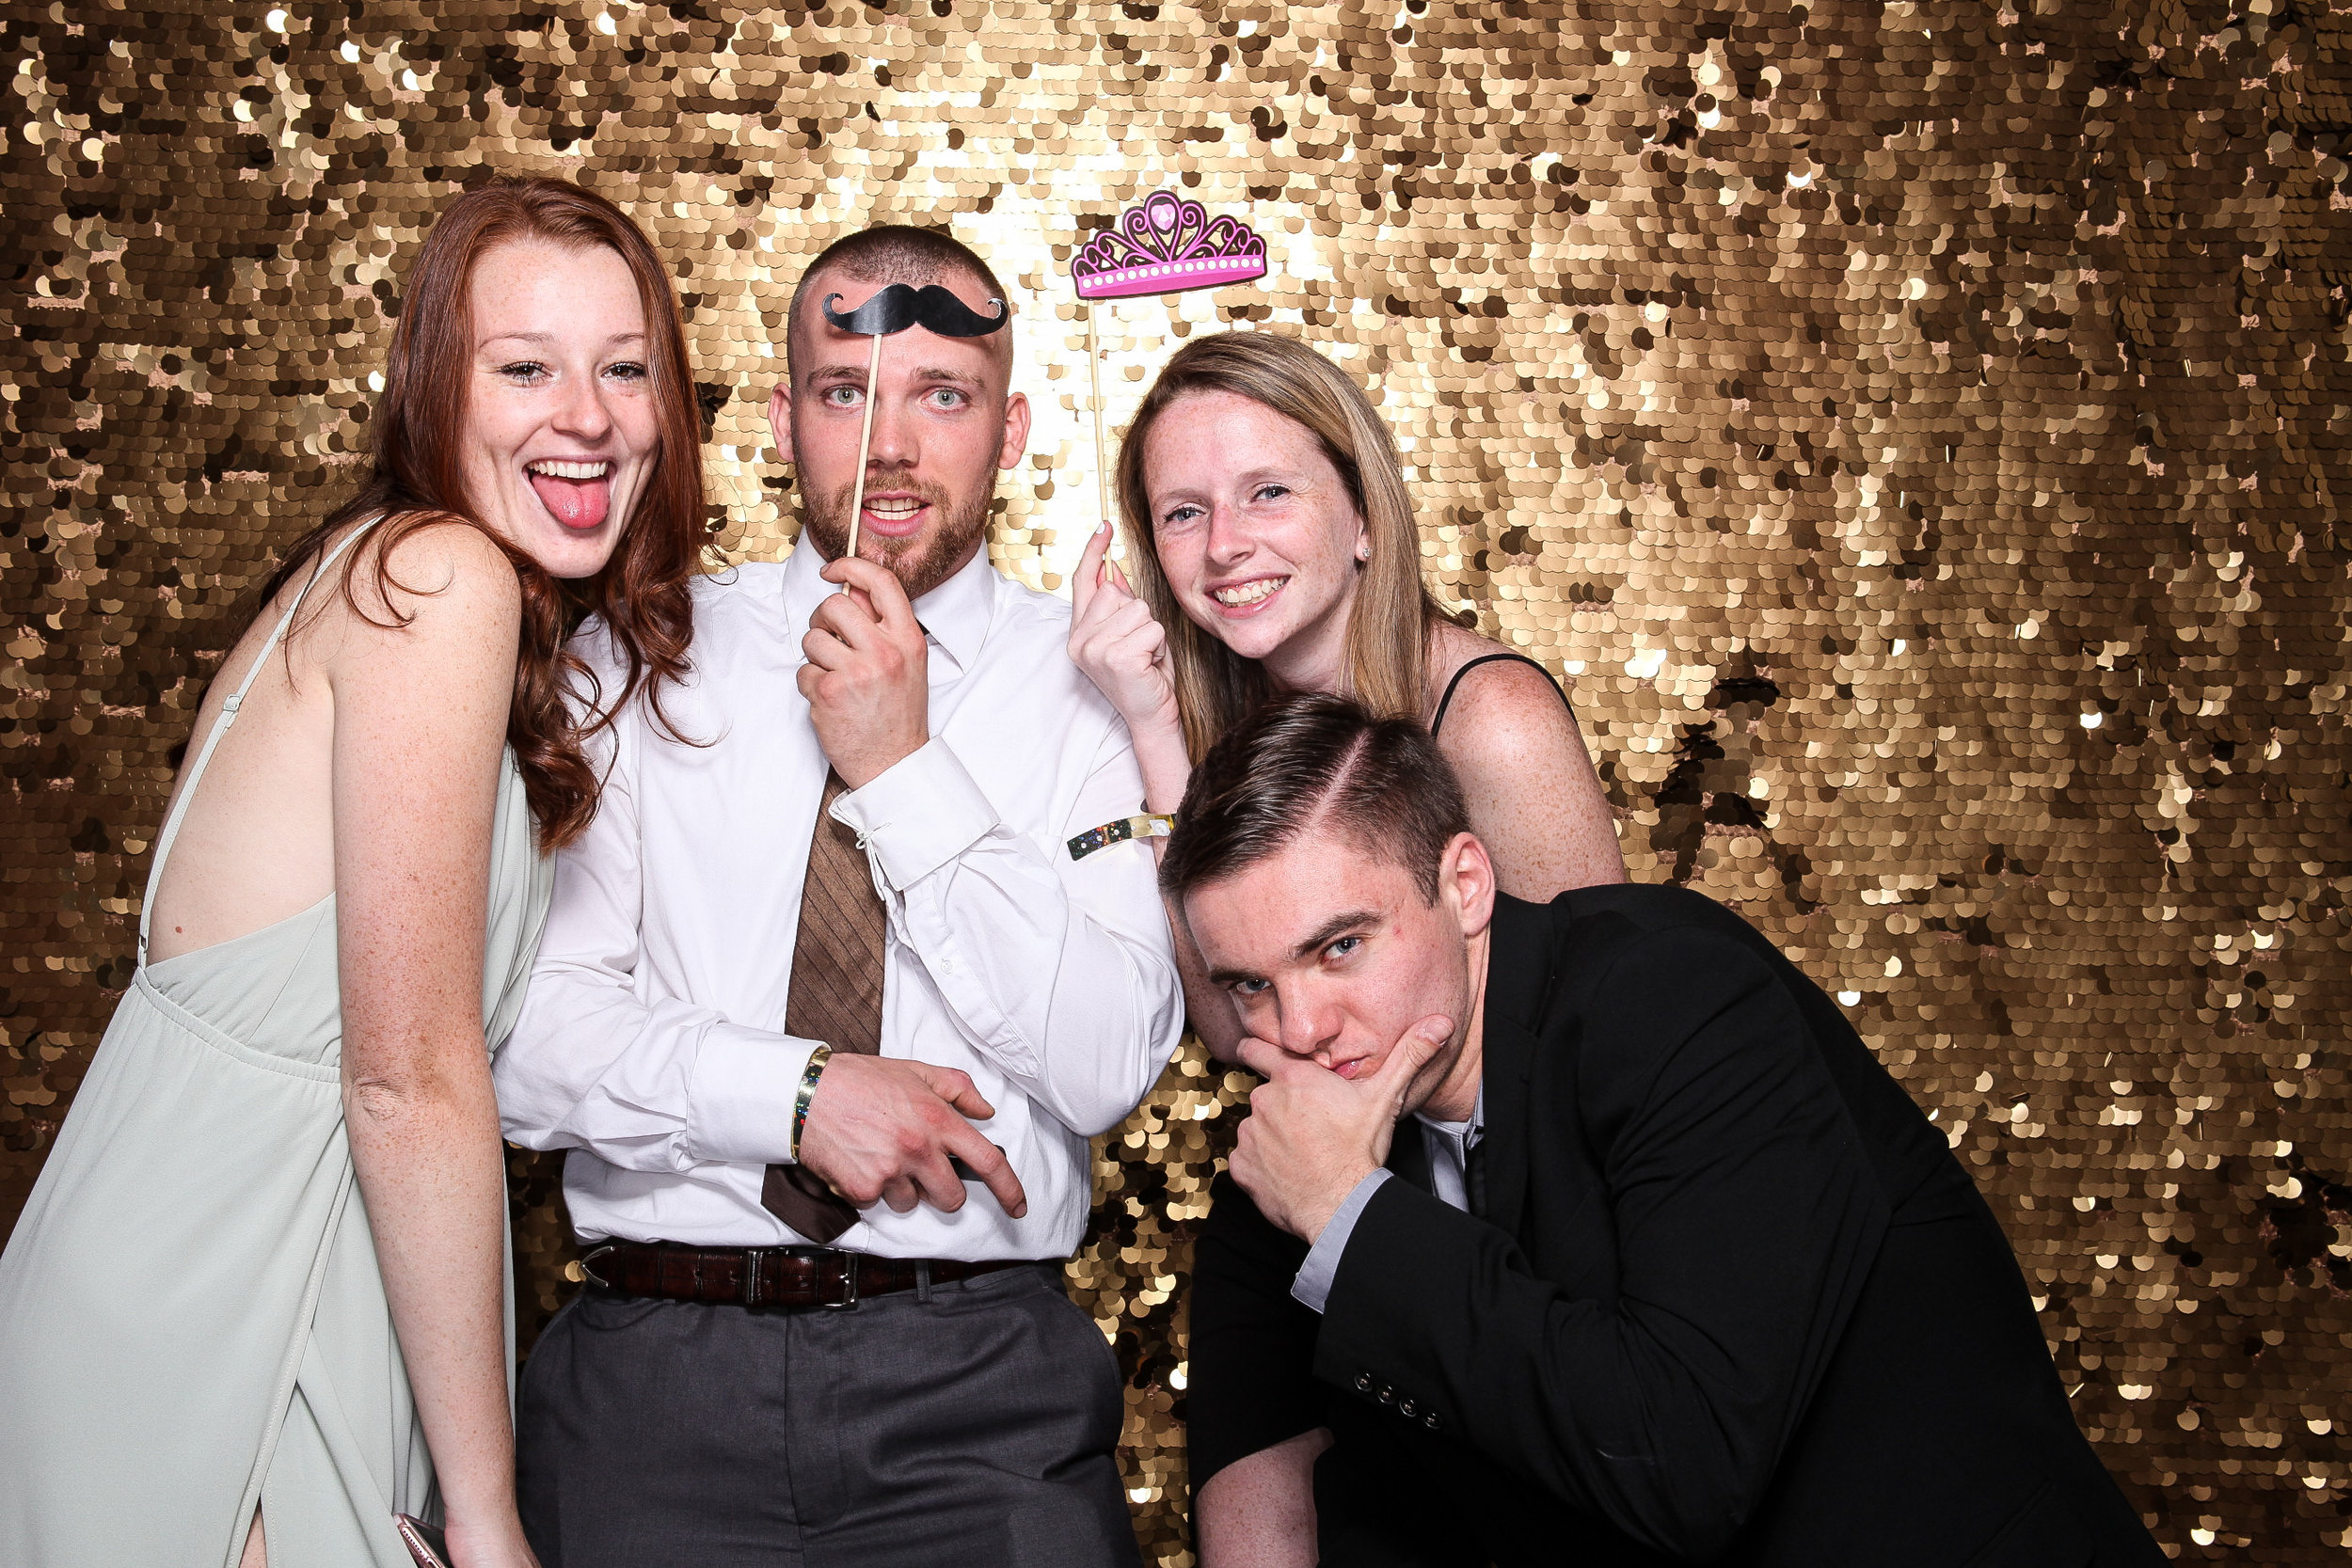 20190503_Adelphi_Senior_Formal-231.jpg